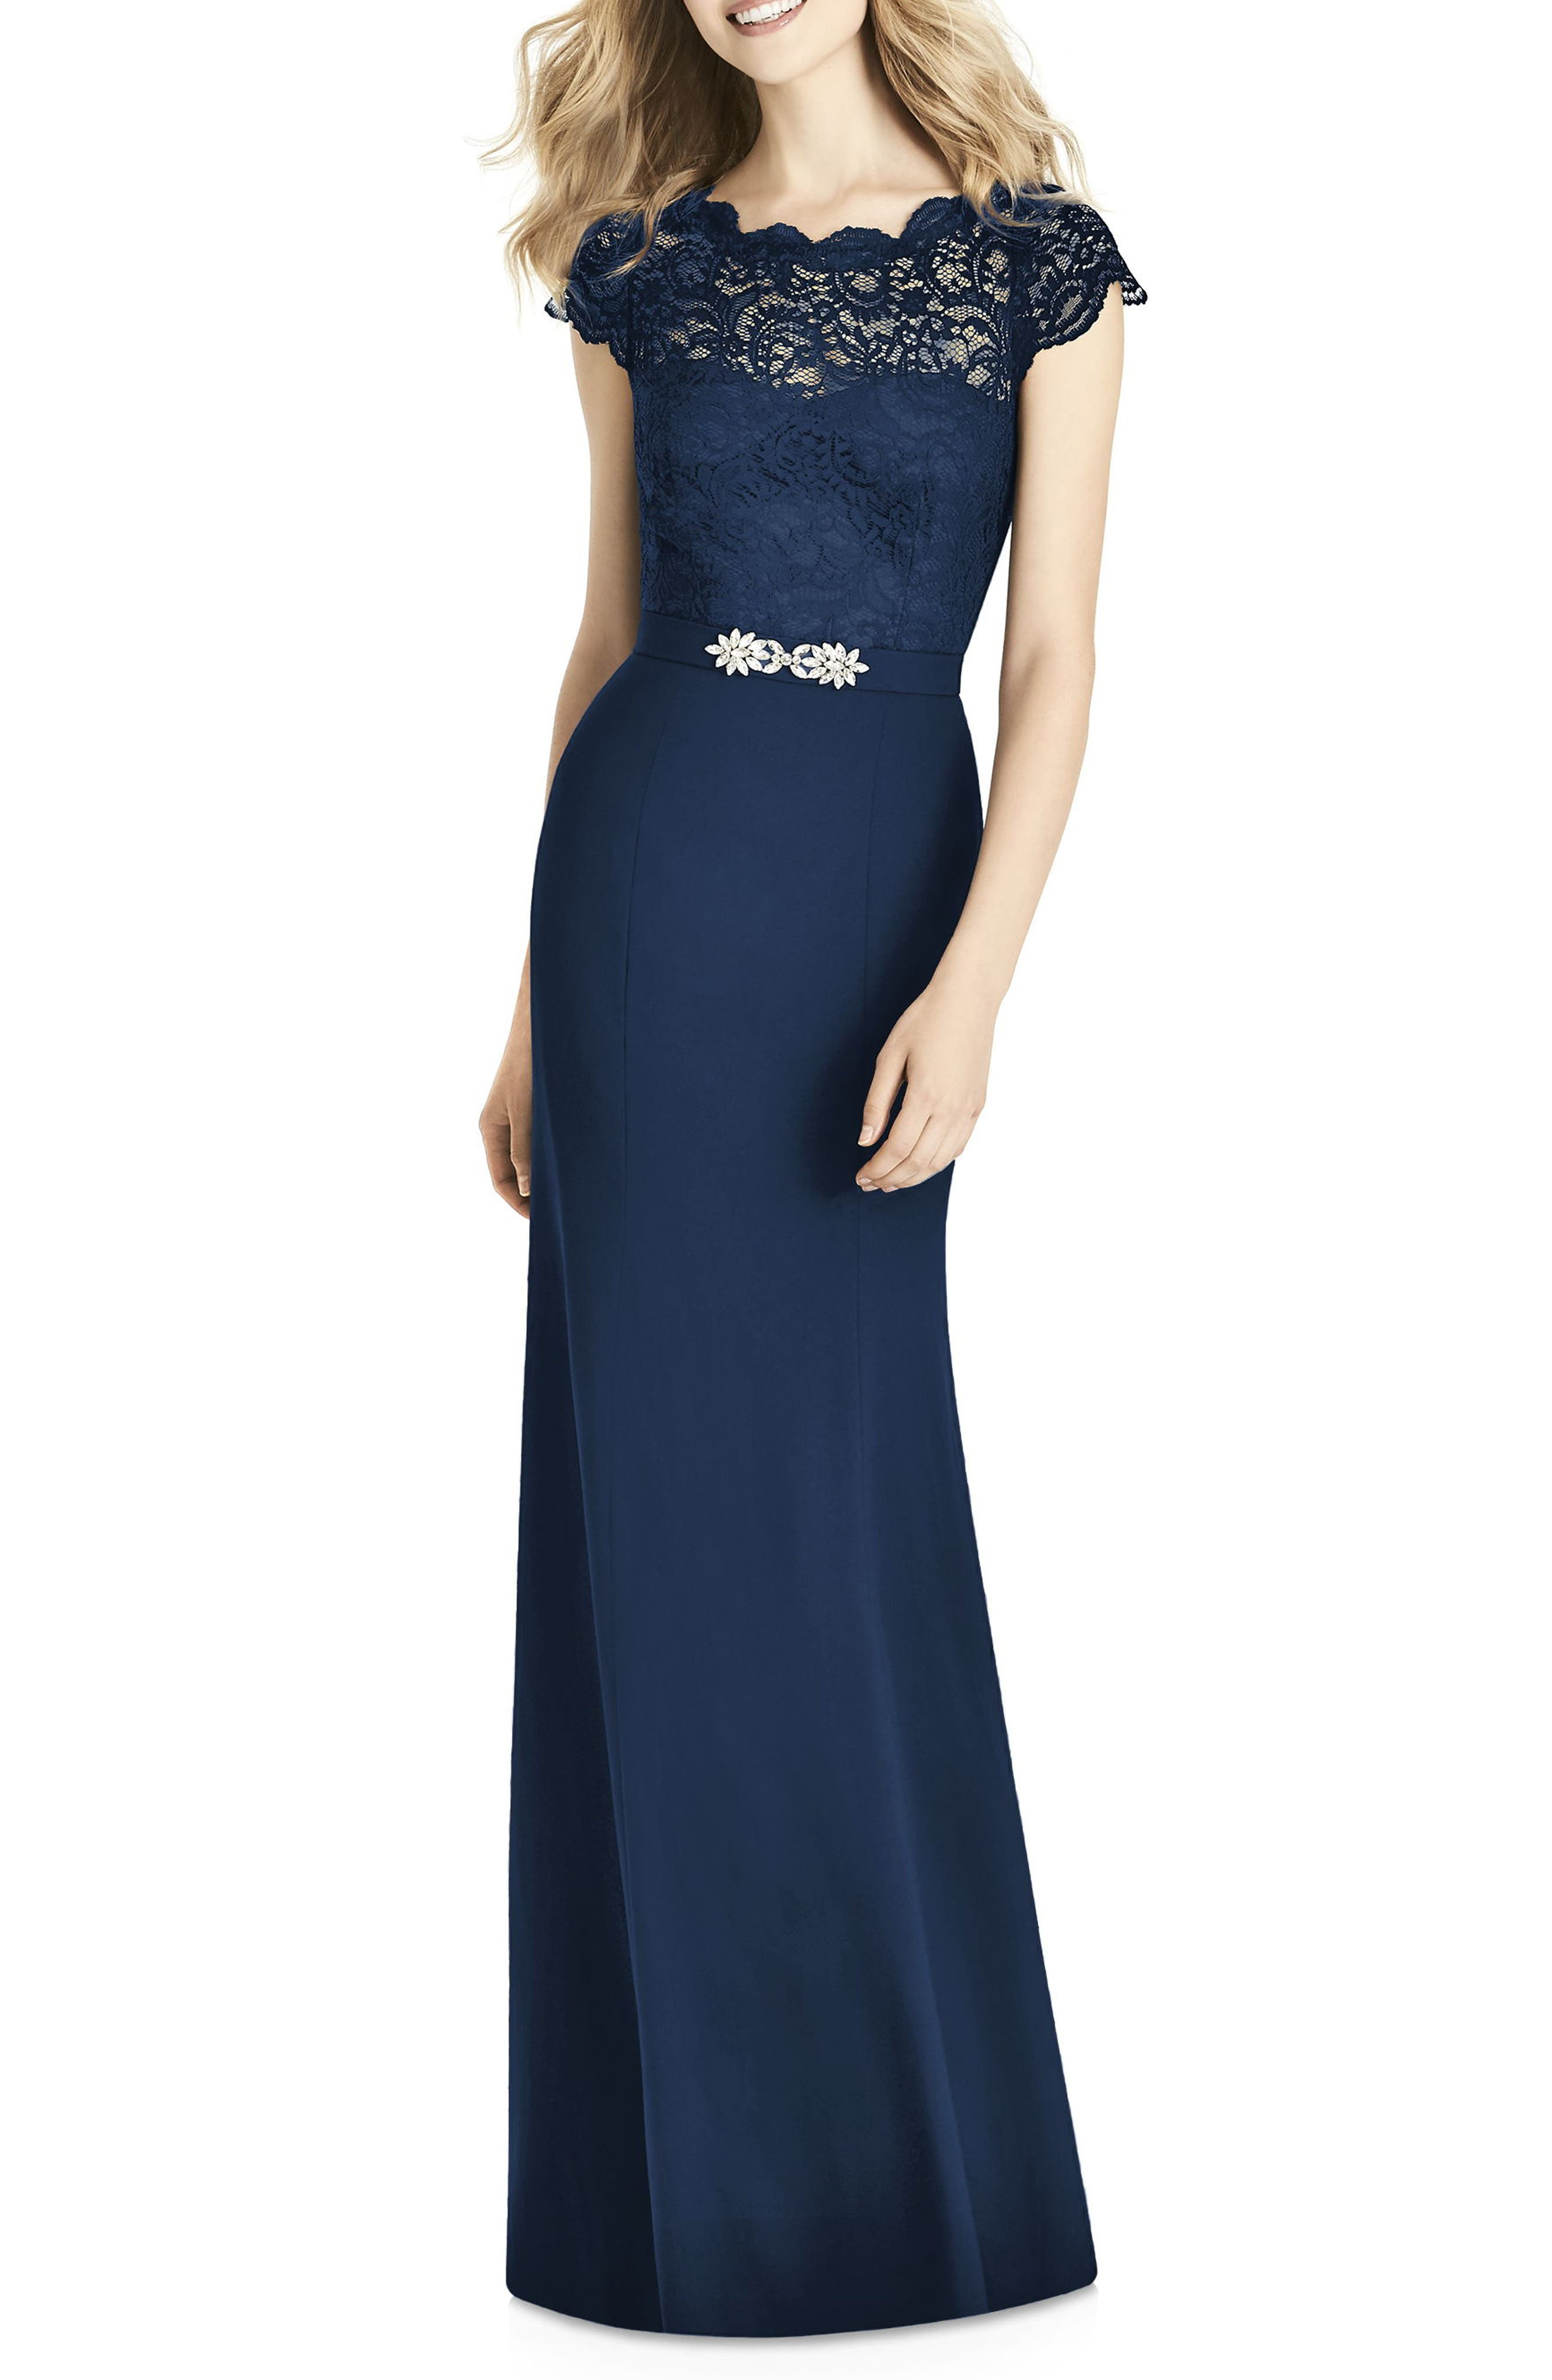 JENNY PACKHAM, Lace & Crepe Sheath Gown, Main thumbnail 1, color, MIDNIGHT